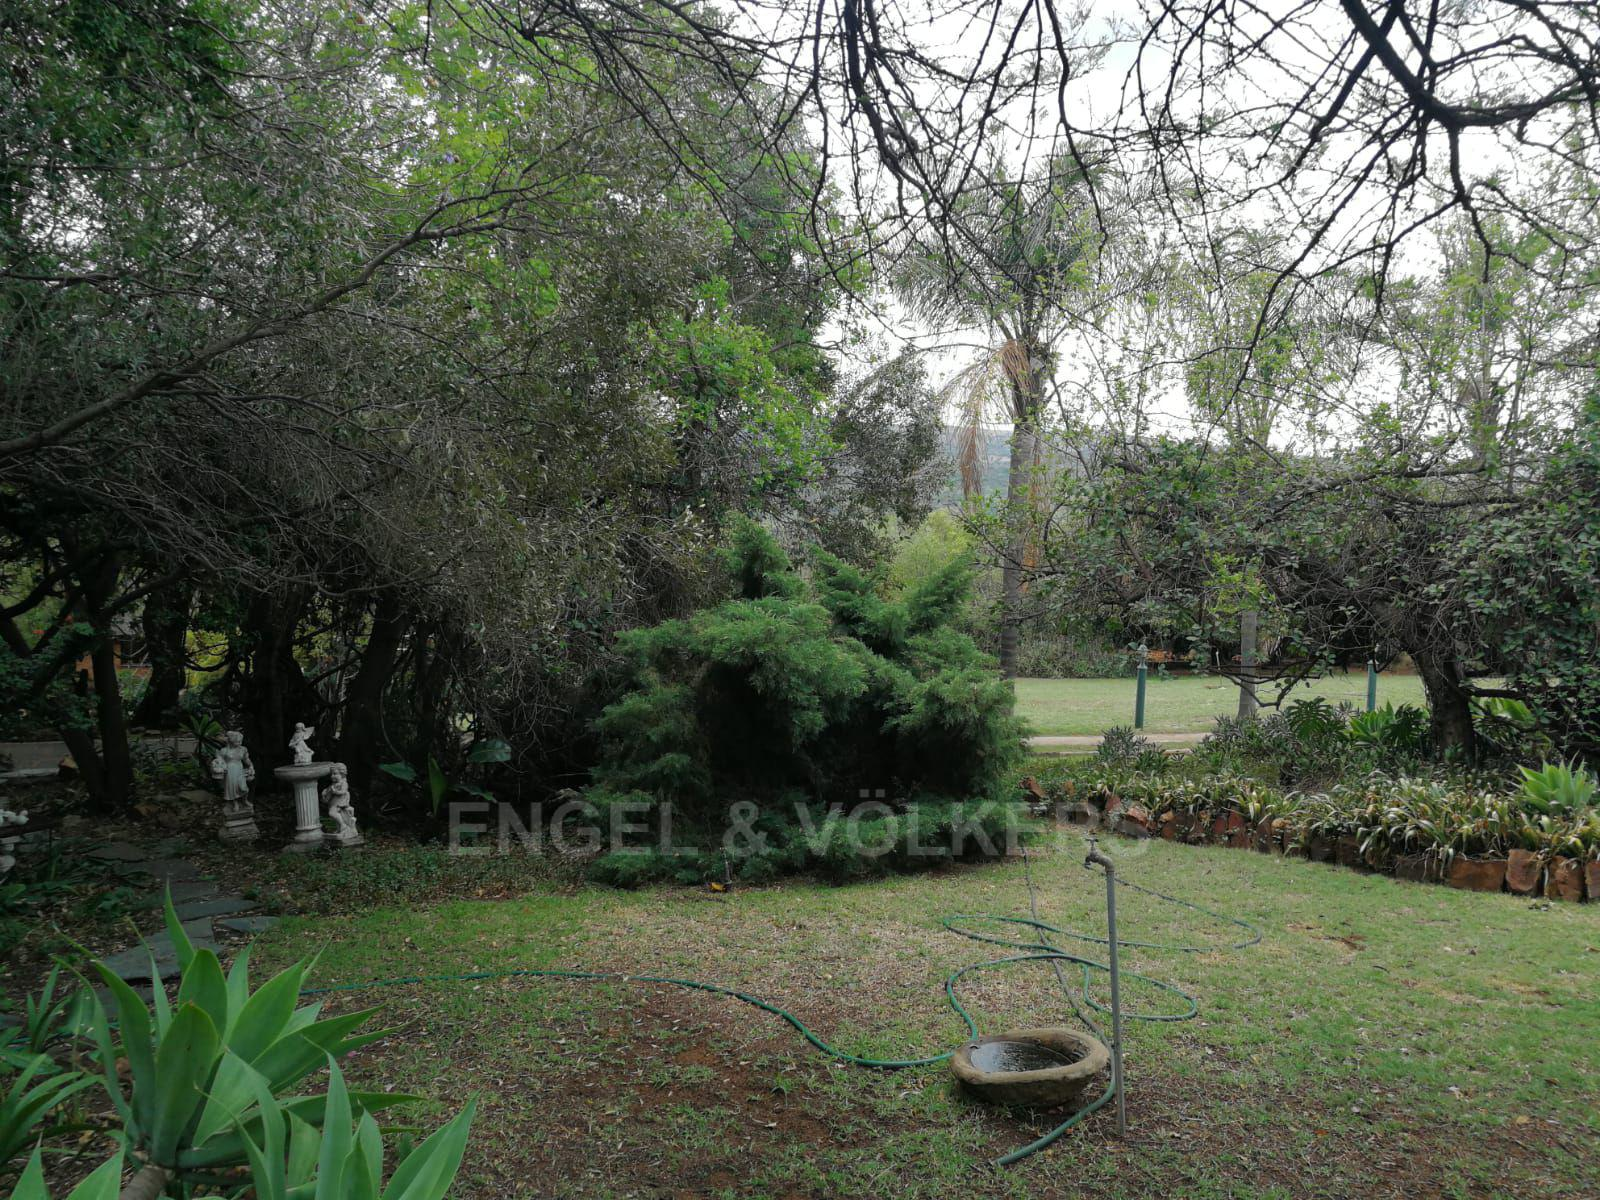 Land in Hartbeespoort Dam Area - Established garden